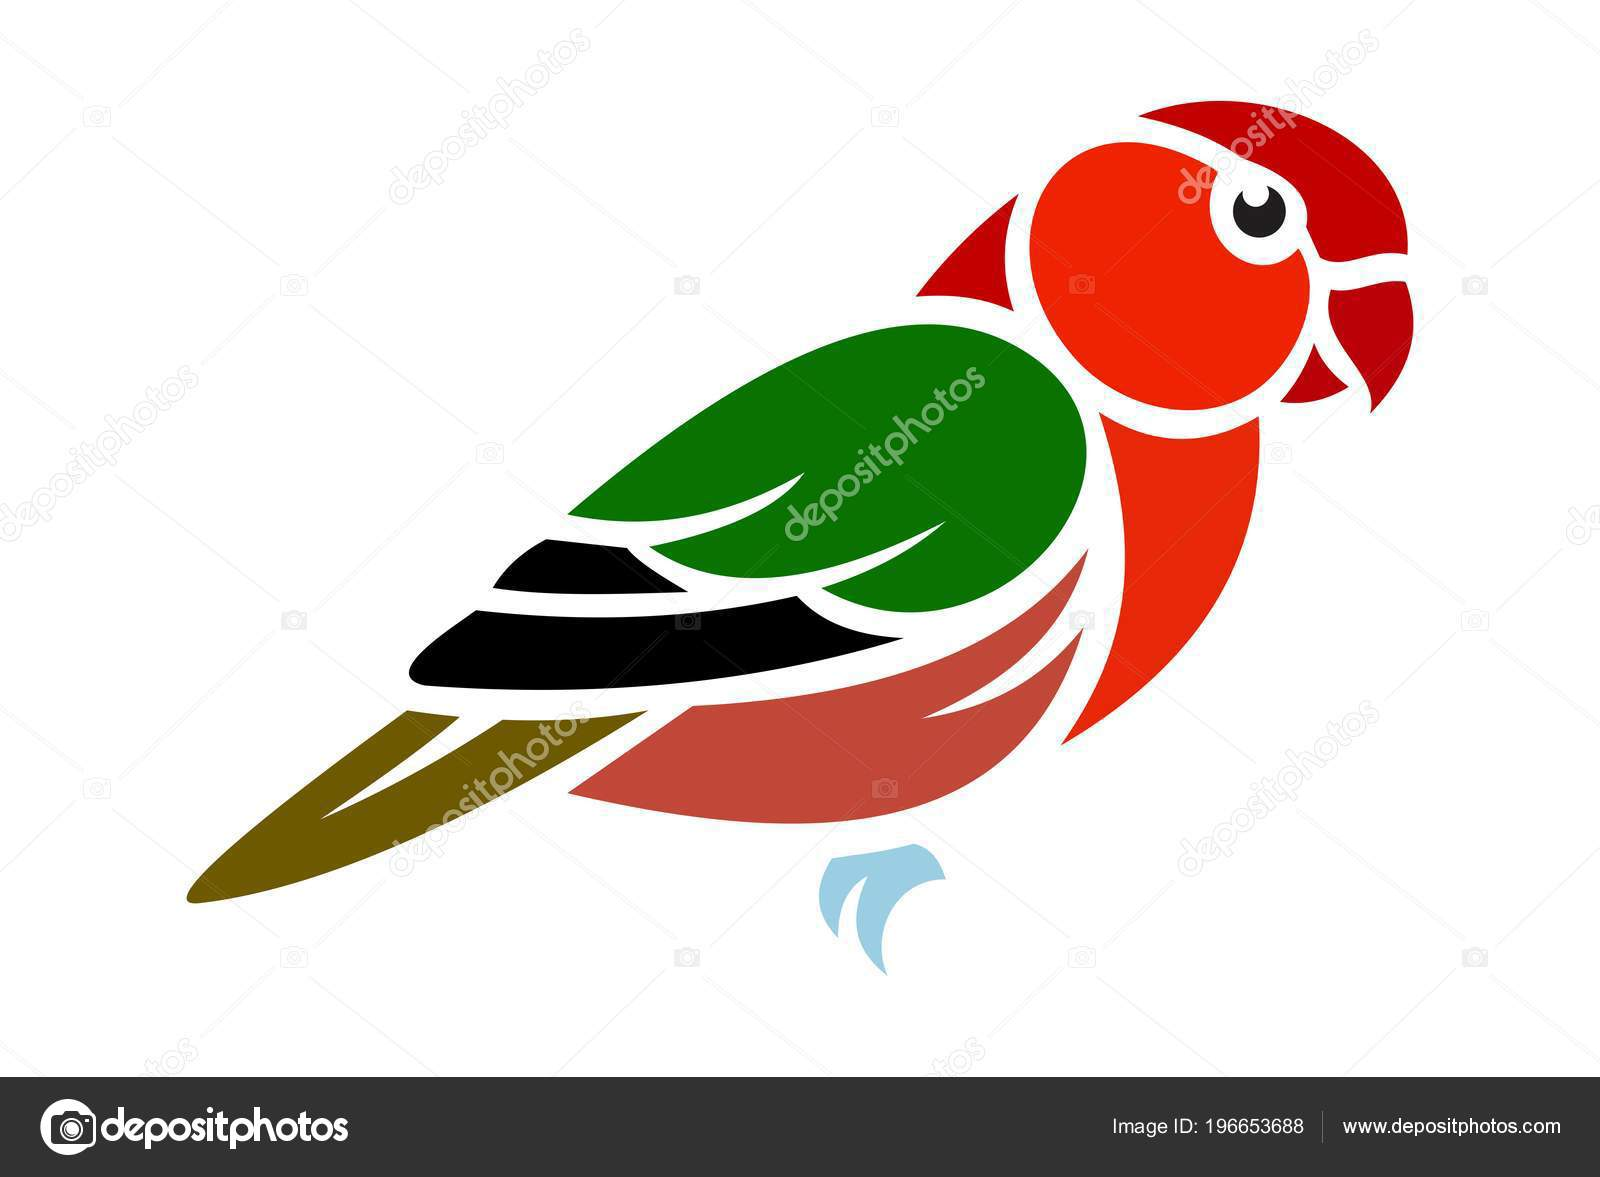 love bird logo vector dsign icon stock vector c adhevaart 196653688 depositphotos